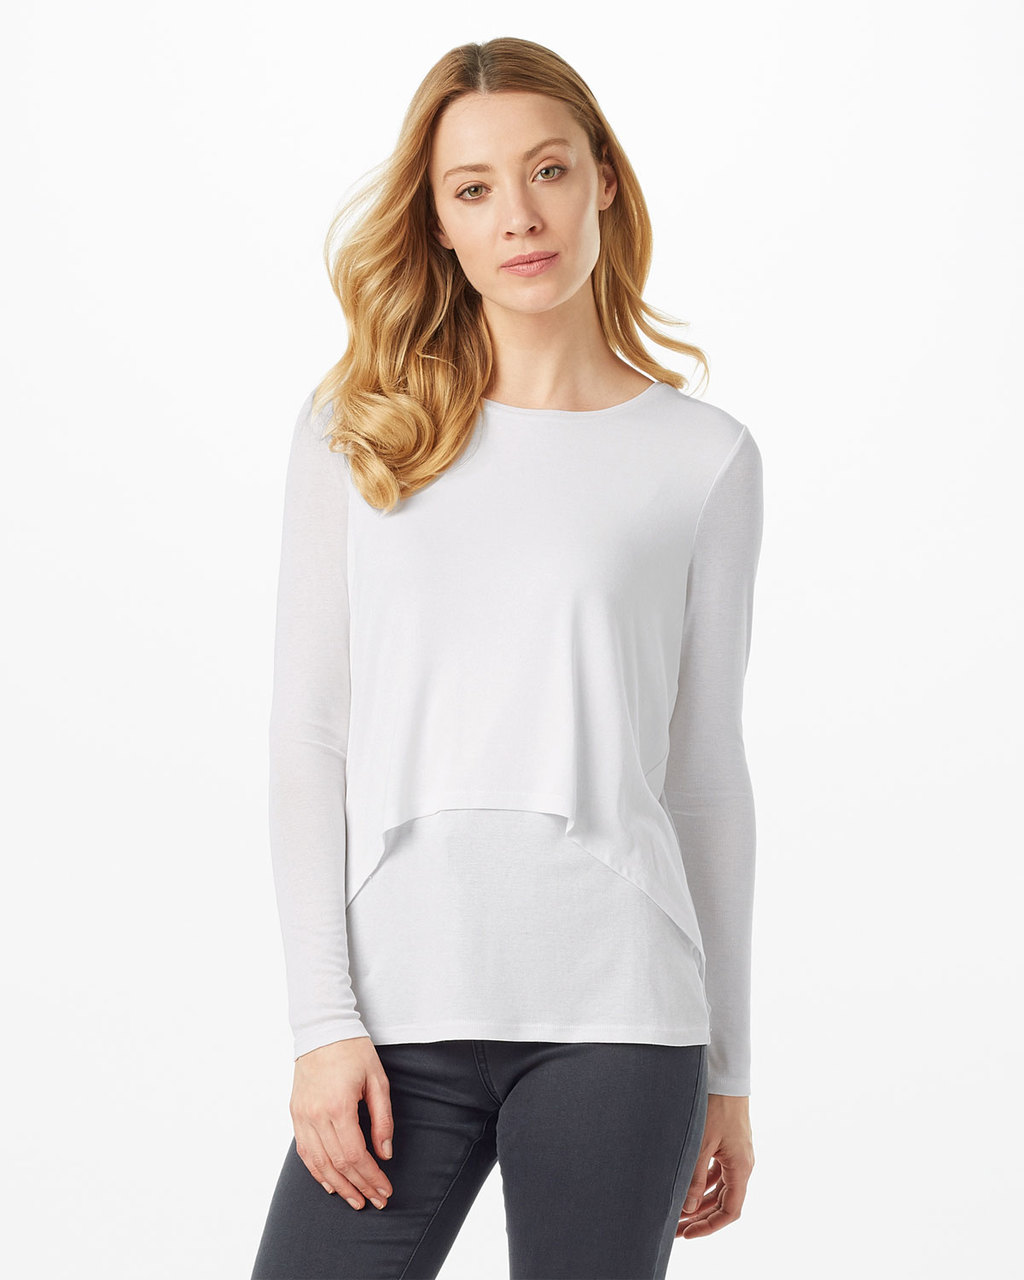 Dita Dbl Layer Top - pattern: plain; length: below the bottom; predominant colour: light grey; occasions: casual; style: top; fibres: viscose/rayon - stretch; fit: body skimming; neckline: crew; sleeve length: long sleeve; sleeve style: standard; pattern type: fabric; texture group: jersey - stretchy/drapey; season: s/s 2016; wardrobe: basic